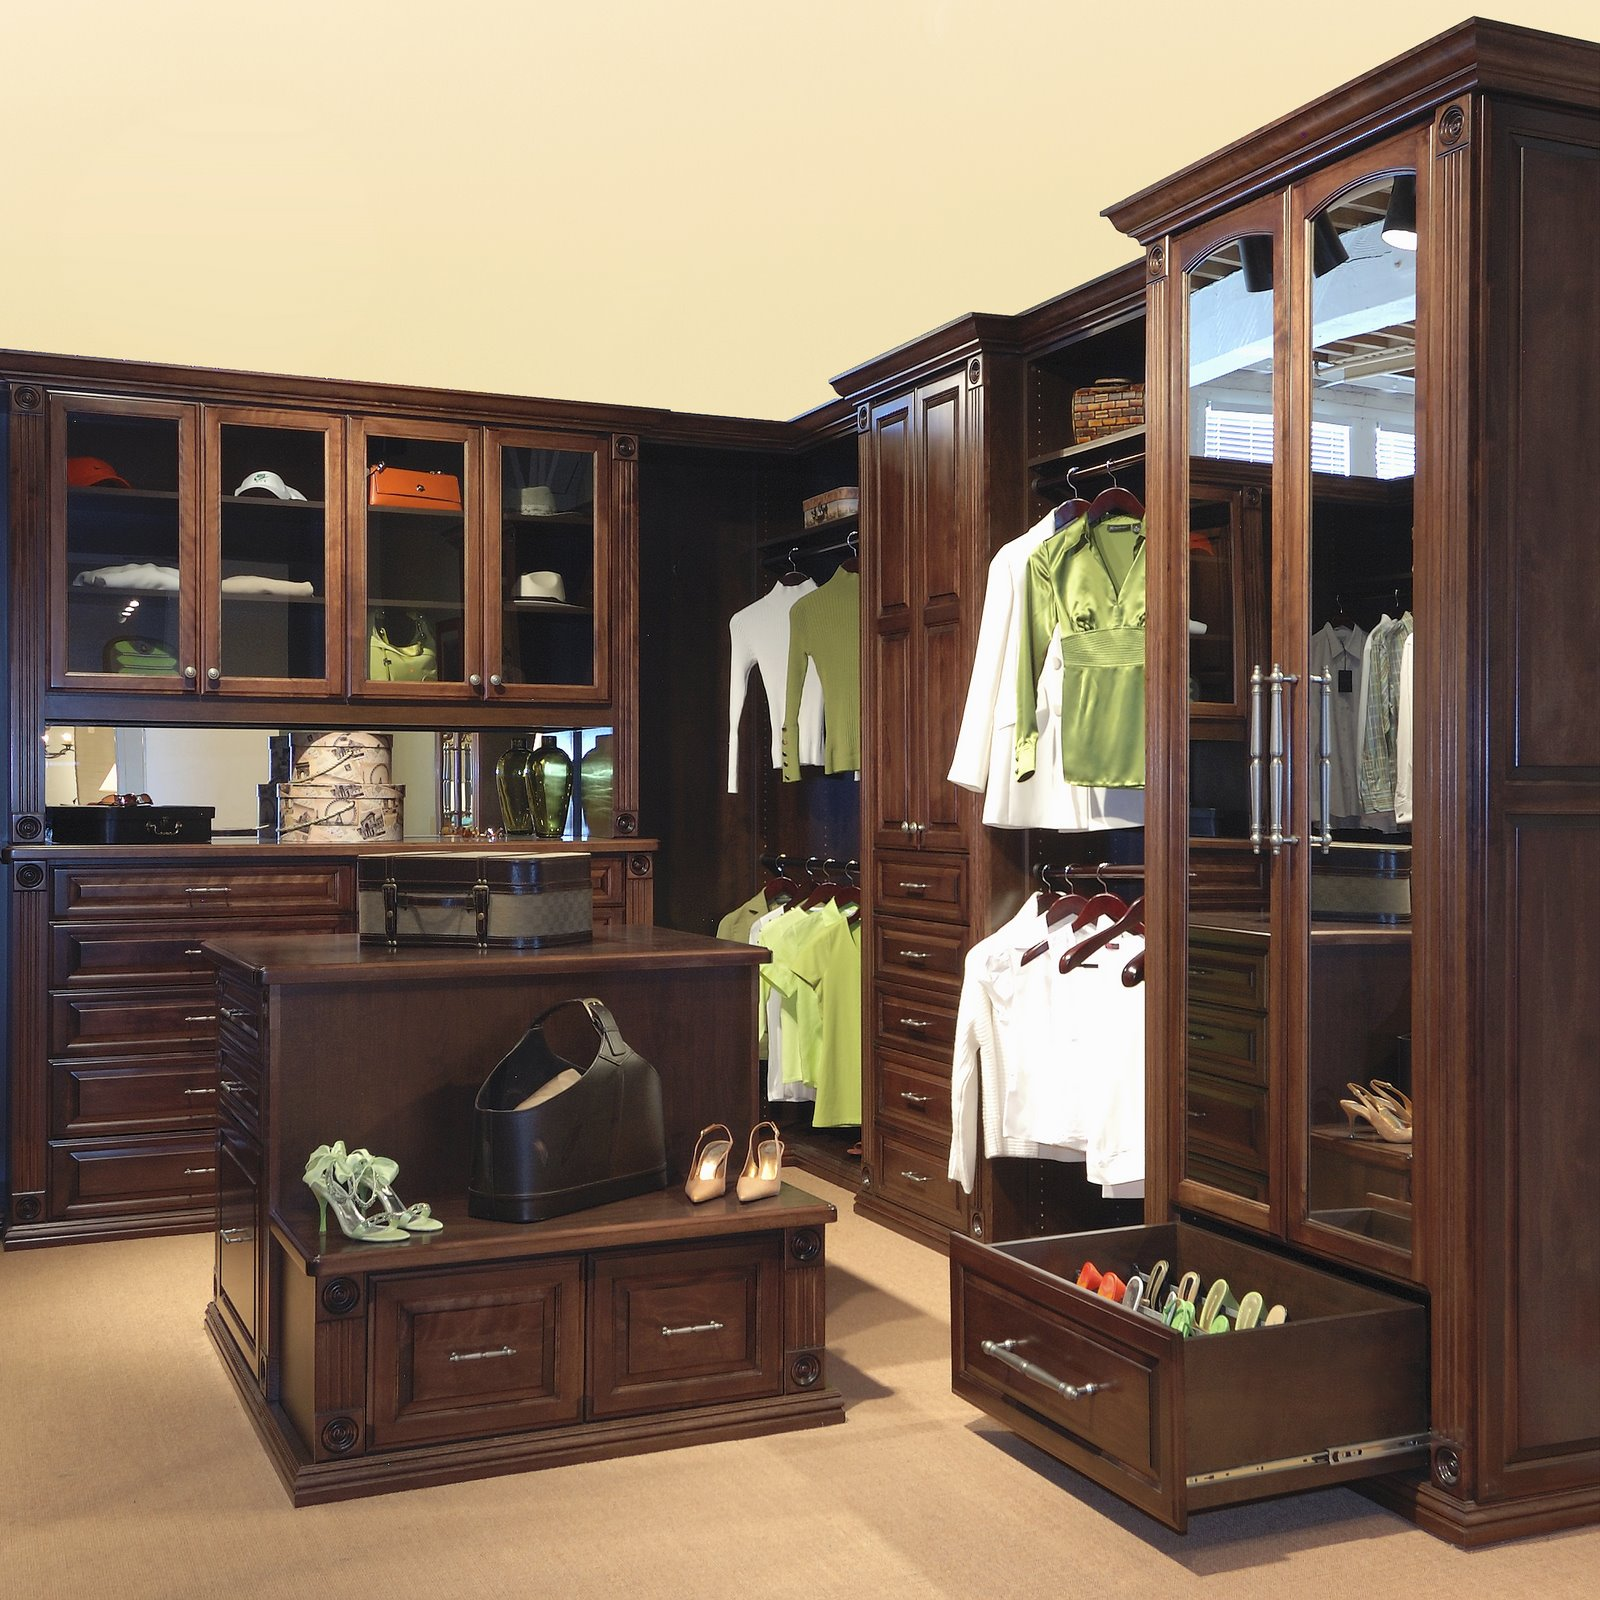 Custom Closet Ideas Designs: Malka In The Closet: CUSTOM CLOSET WARDROBE